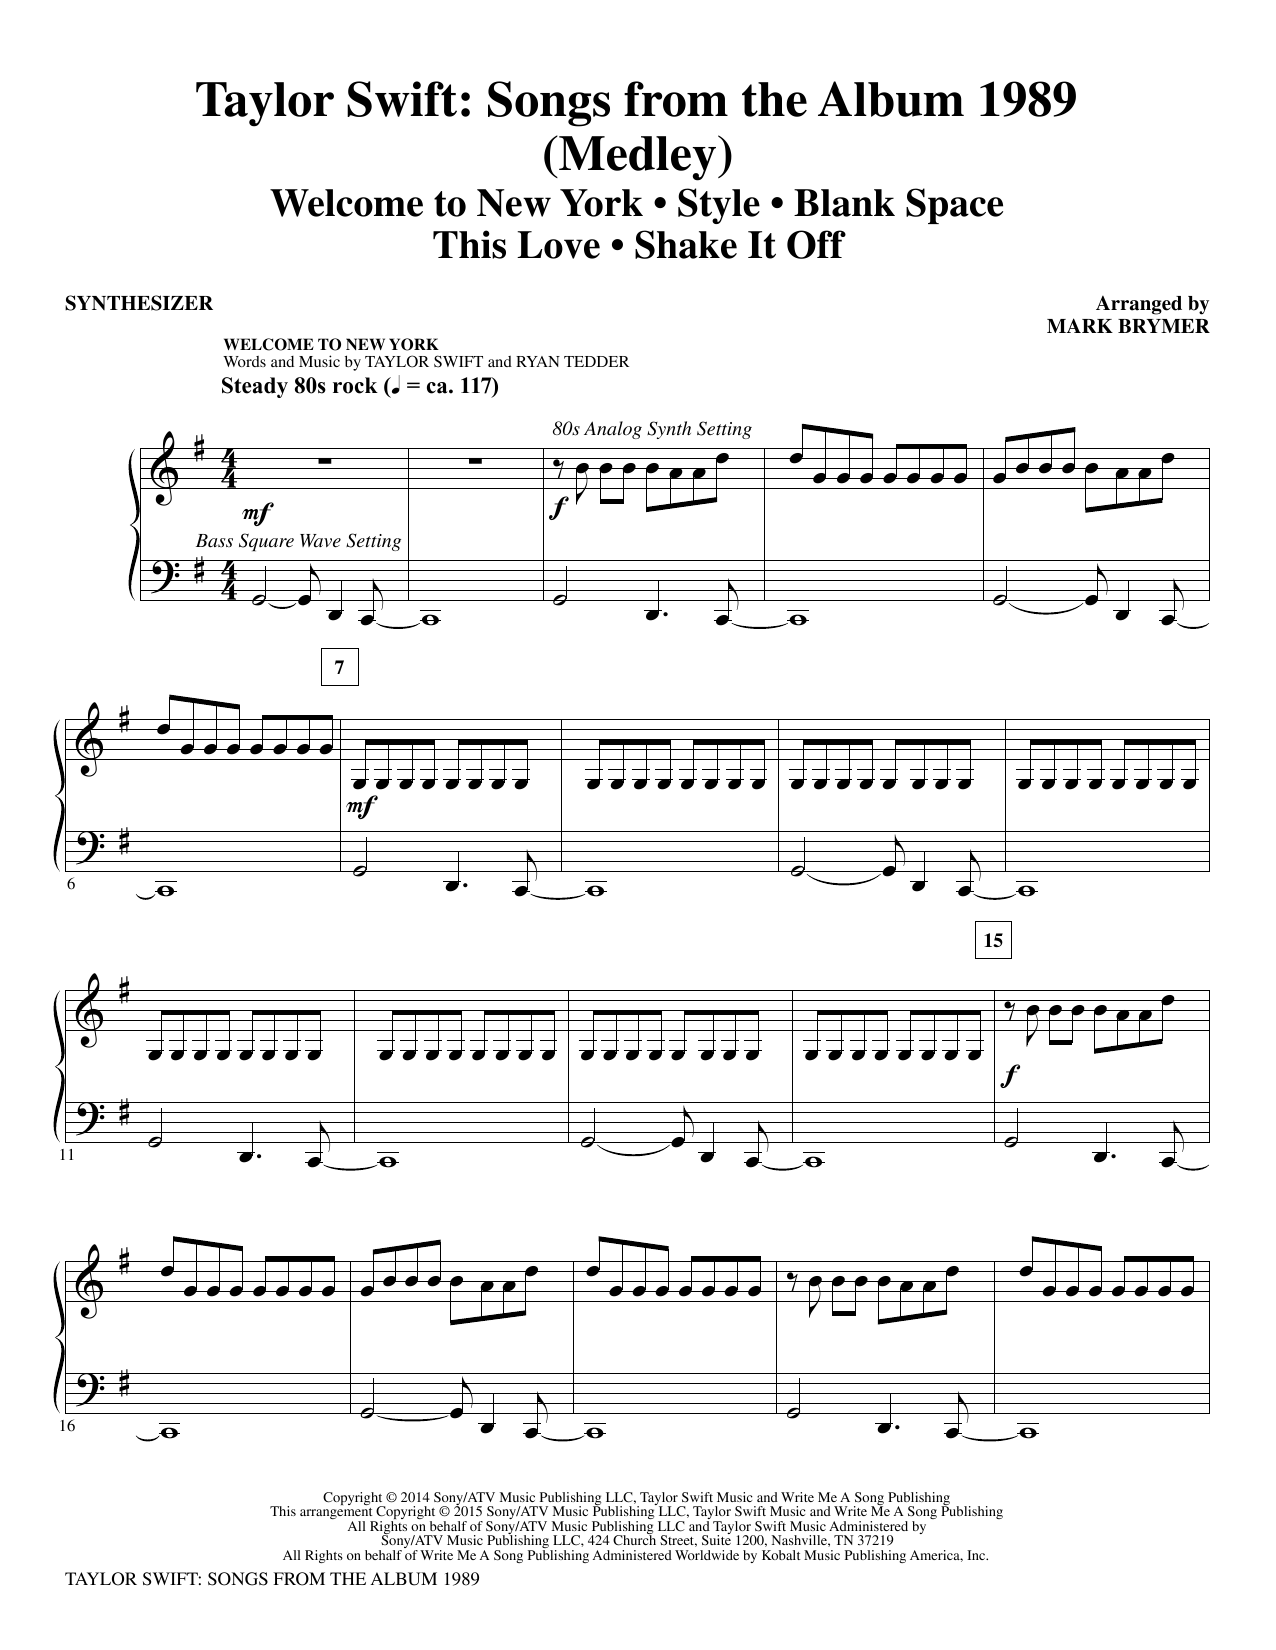 Taylor Swift: Songs from the Album 1989 (complete set of parts) sheet music for orchestra/band by Mark Brymer